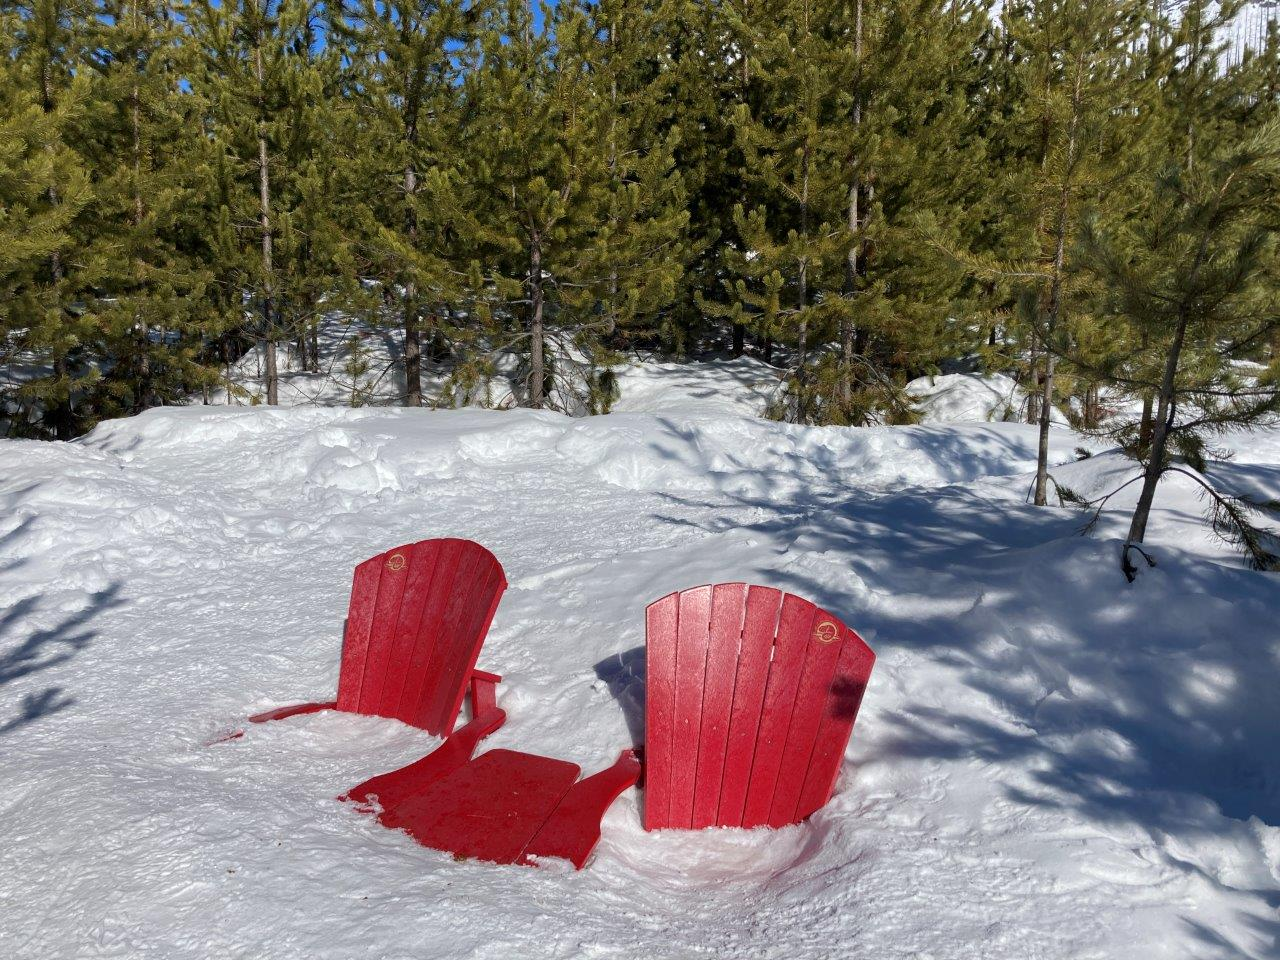 Marble Canyon red chairs in winter